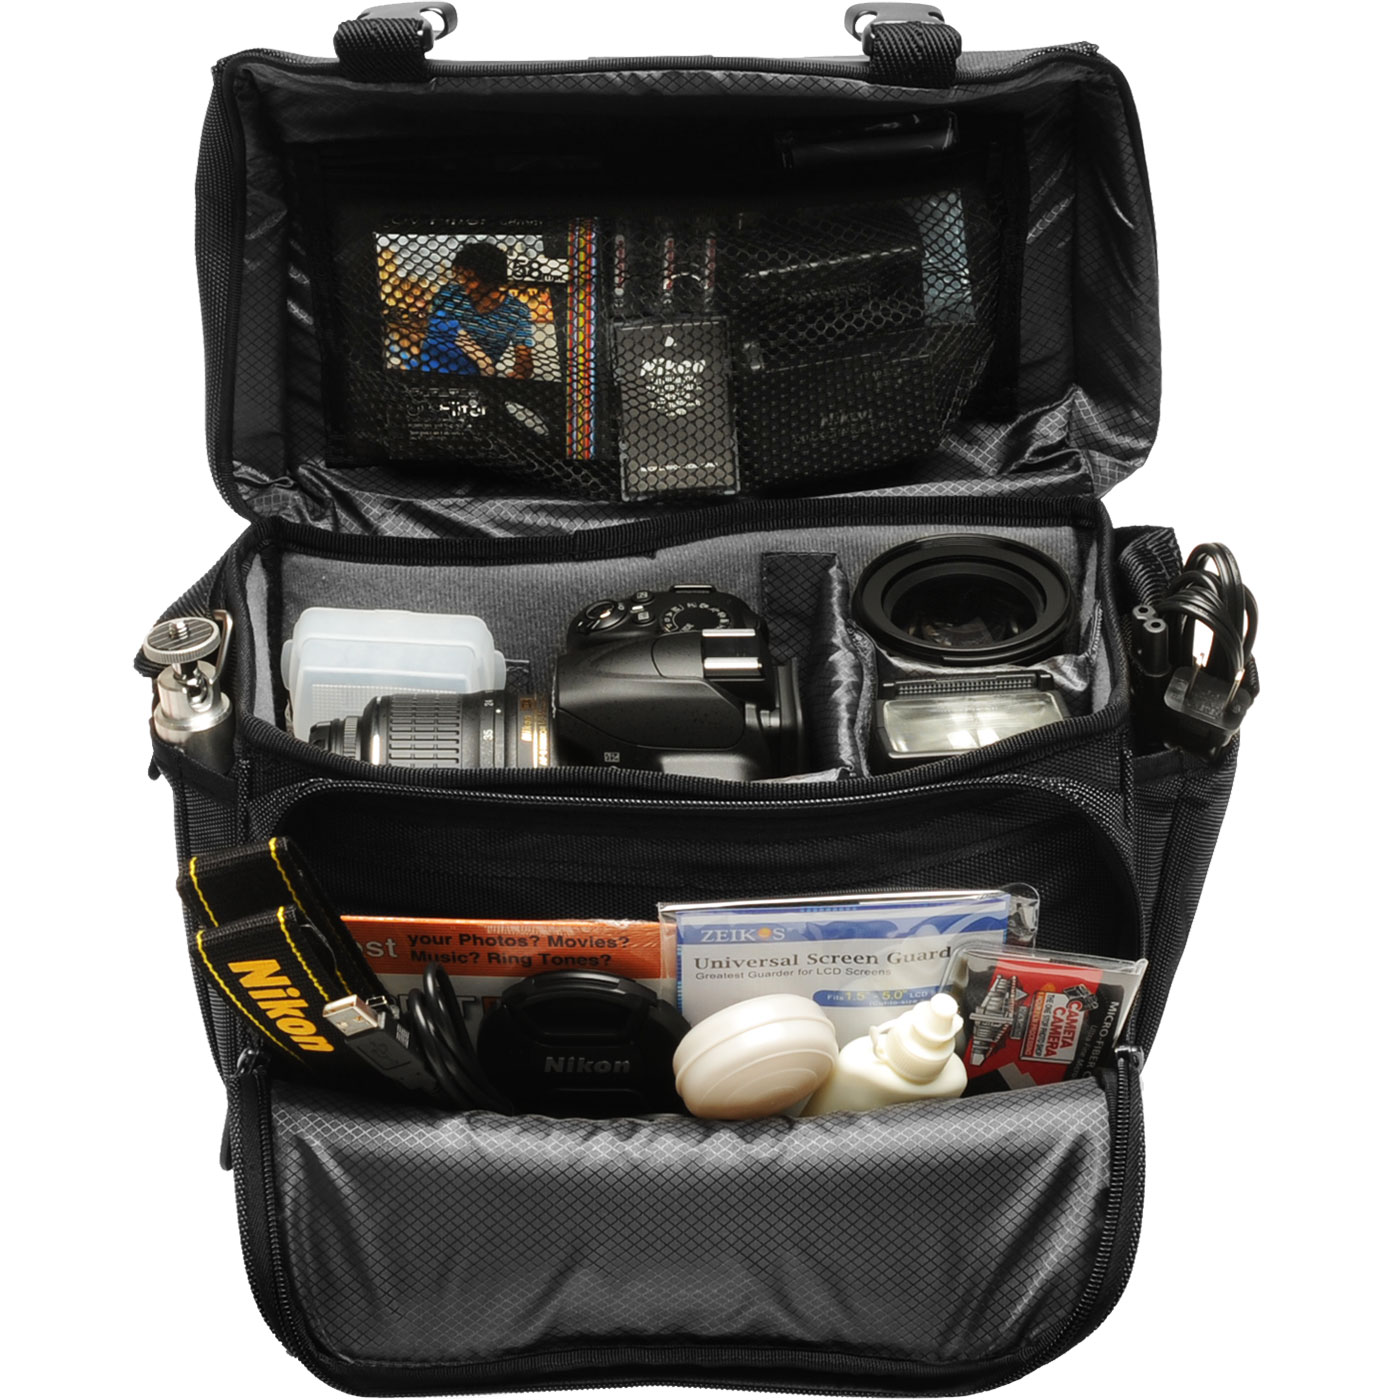 Camera Nikon Camera Bags nikon deluxe digital slr camera case gadget bag factory refurbished for d4s d800 d610 d7100 d7000 d5500 d5300 d5200 d5100 d